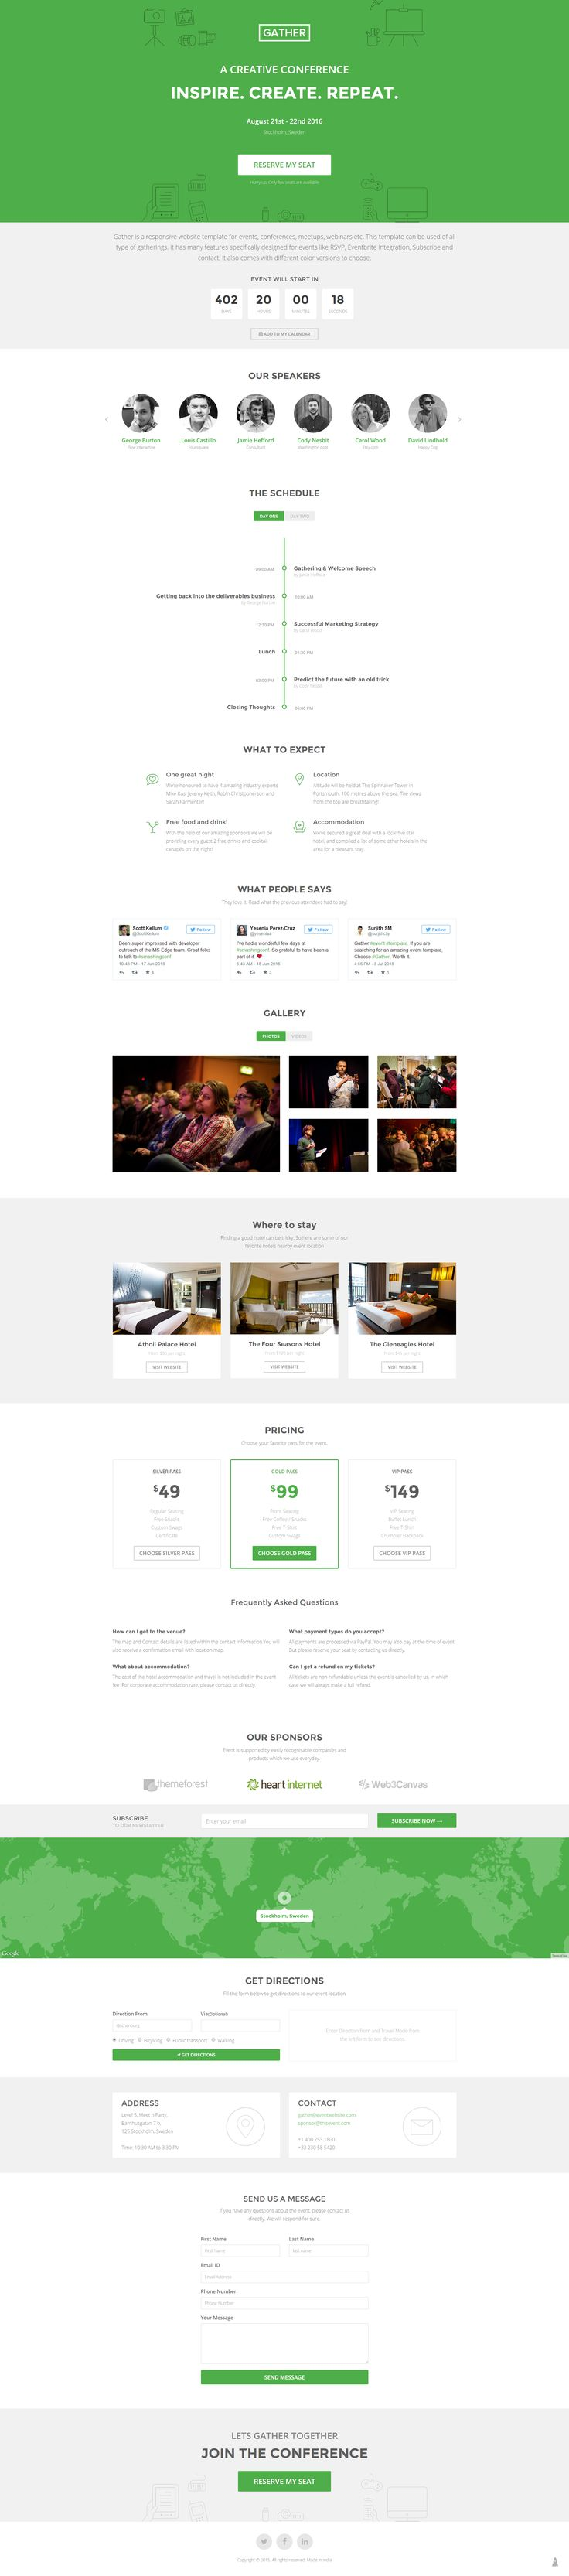 Event Landing Page Template - Gather - Marketing | ThemeForest